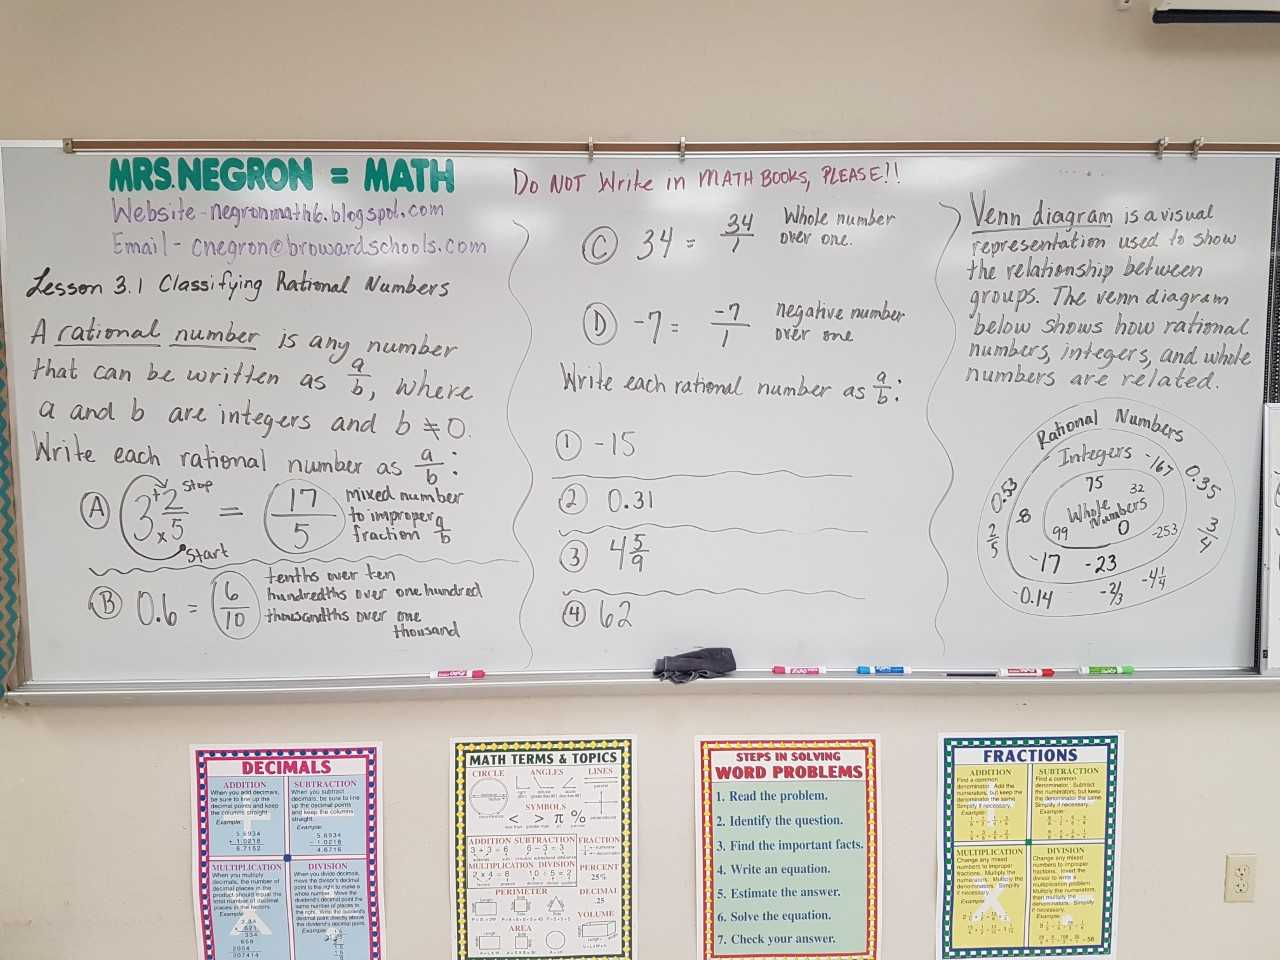 medium resolution of Mrs. Negron 6th Grade Math Class: Lesson 3.1 Classifying Rational Numbers